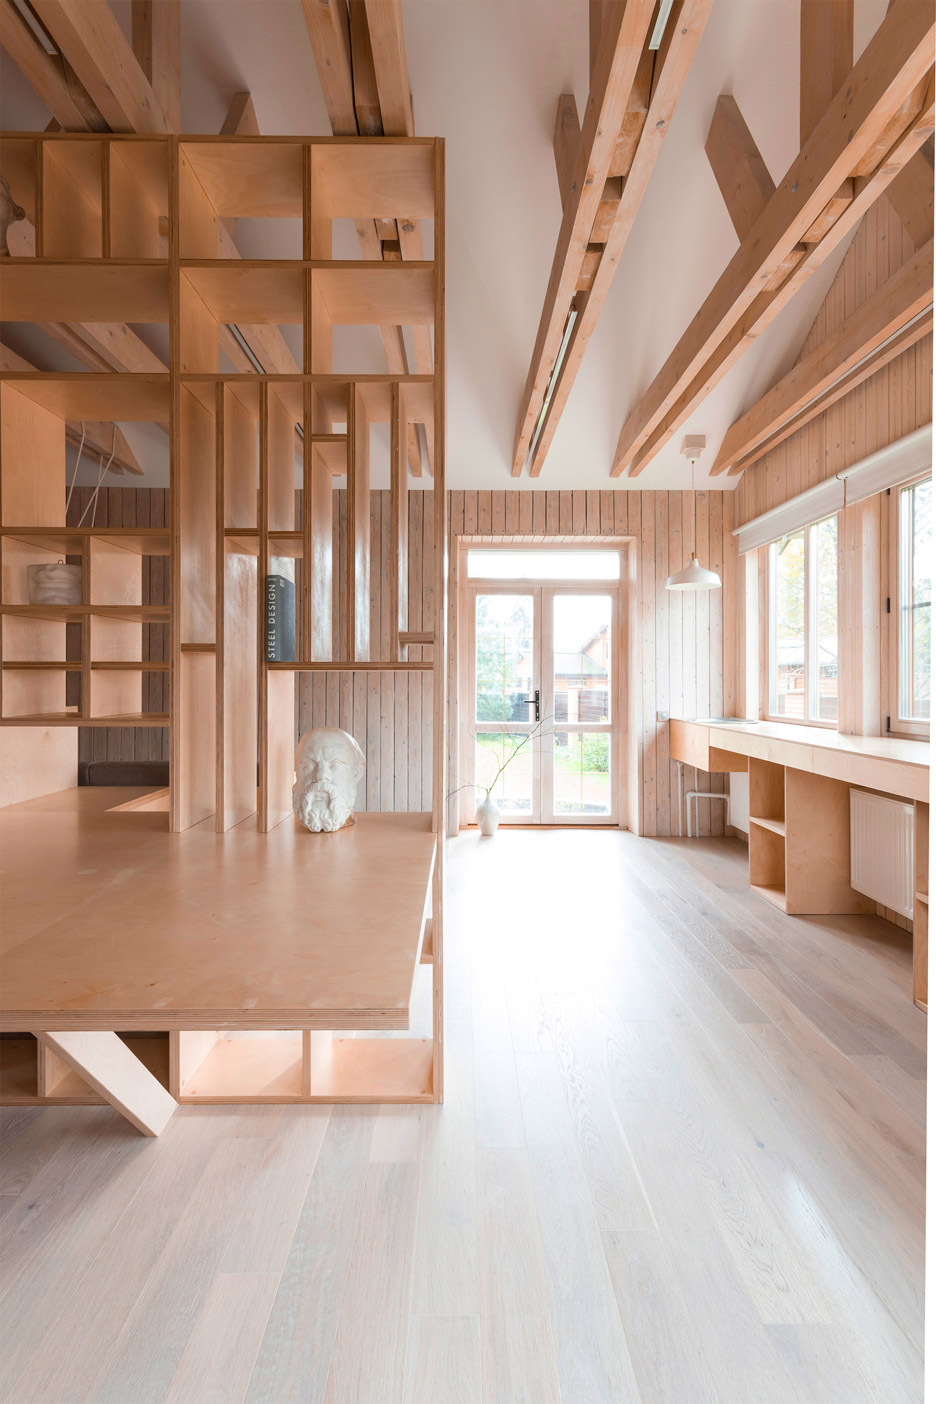 studio plywood artist architecture interior storage garage ruetemple moscow workshop seating workroom inspiration architects sleeping residential architect dezeen areas combines